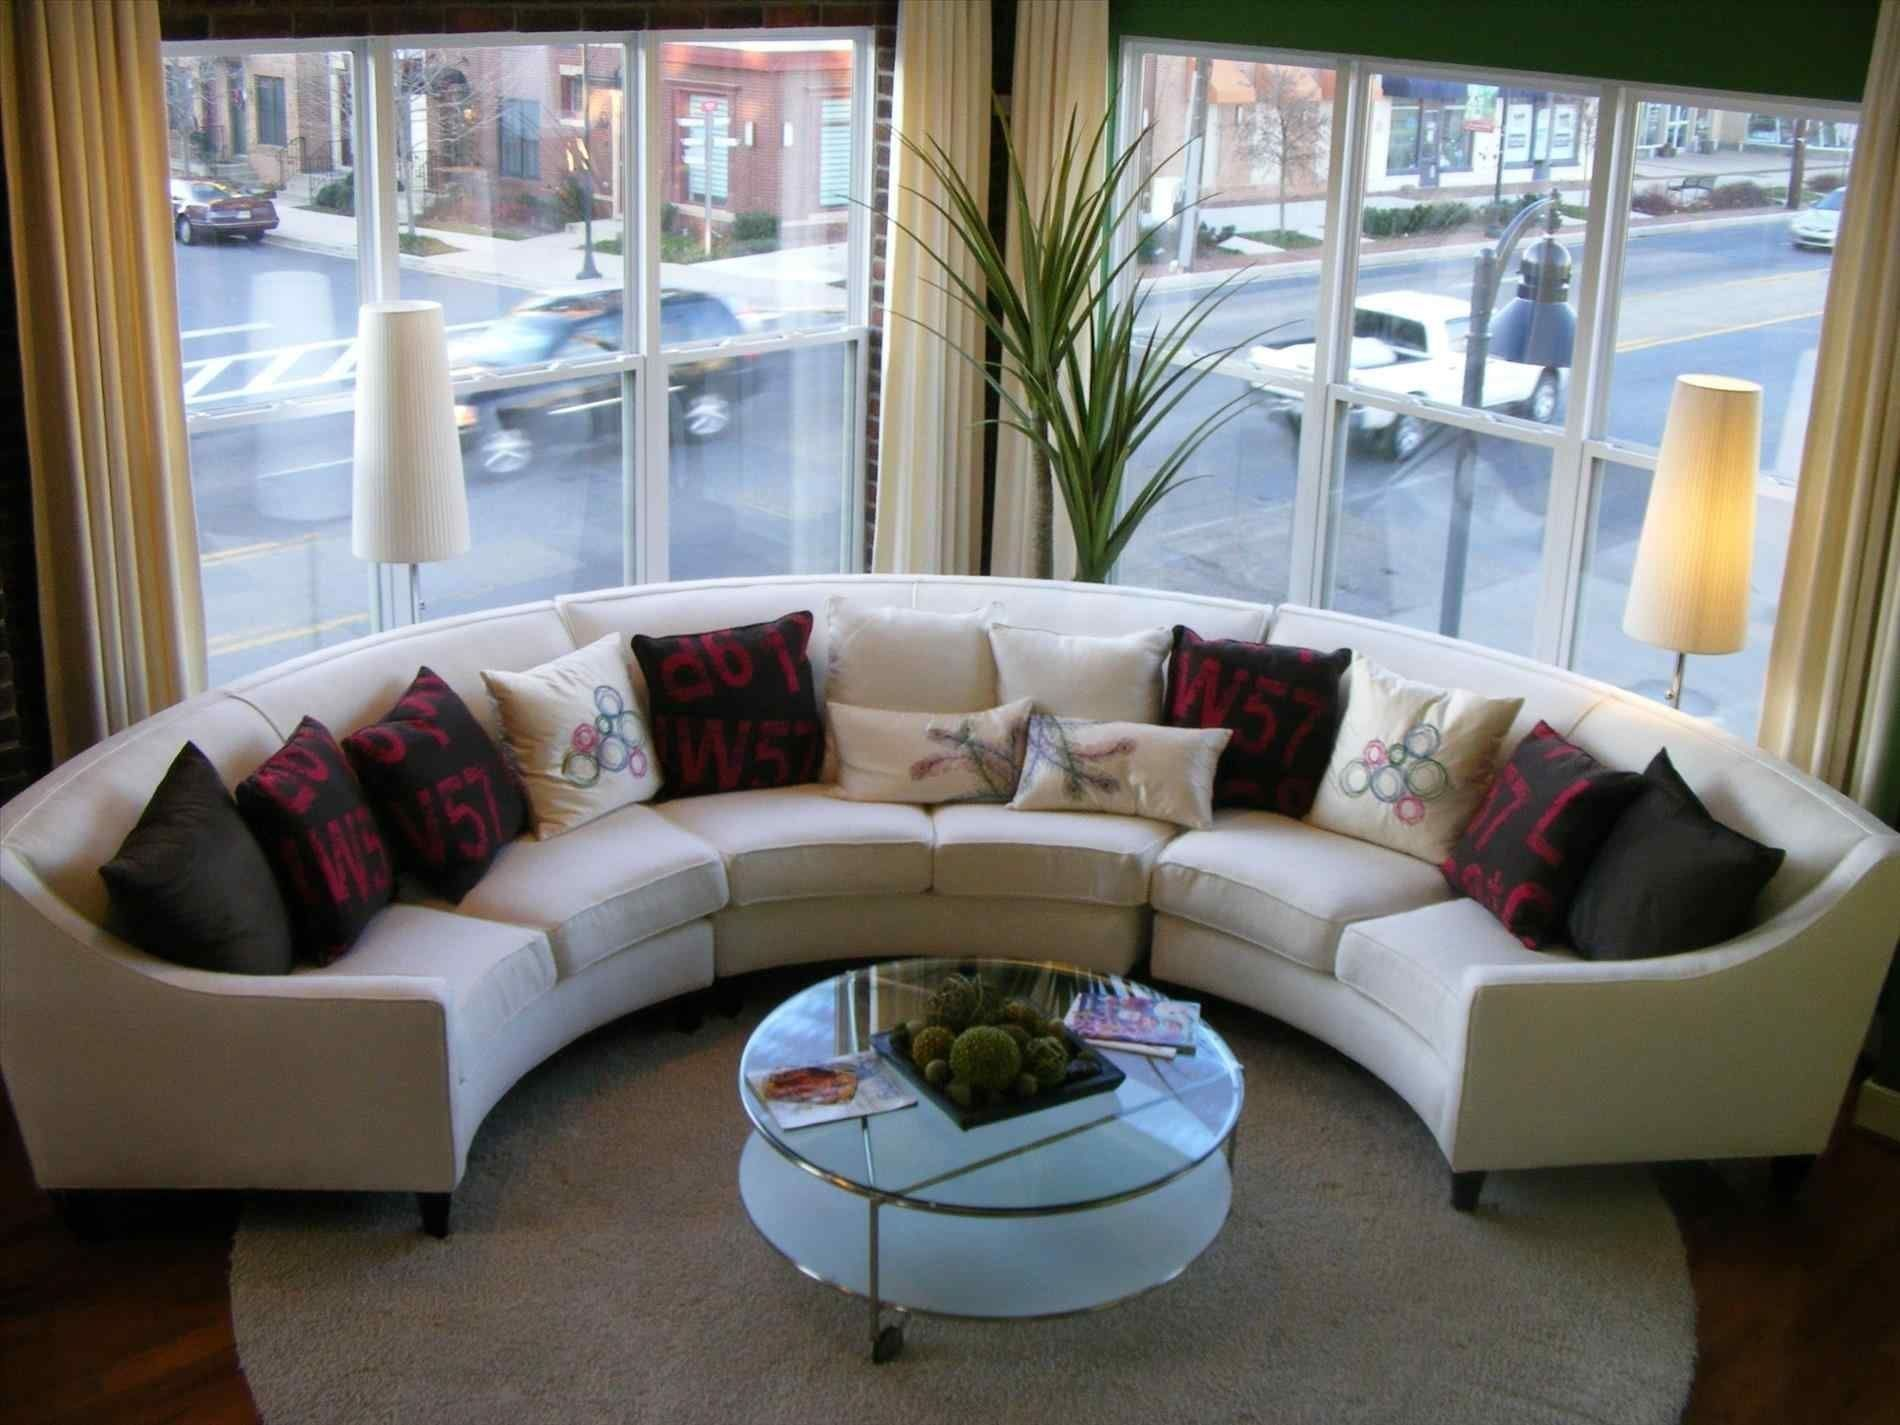 43 Classy Curved Leather Sectional Sofa Ideas Sectional Sofas